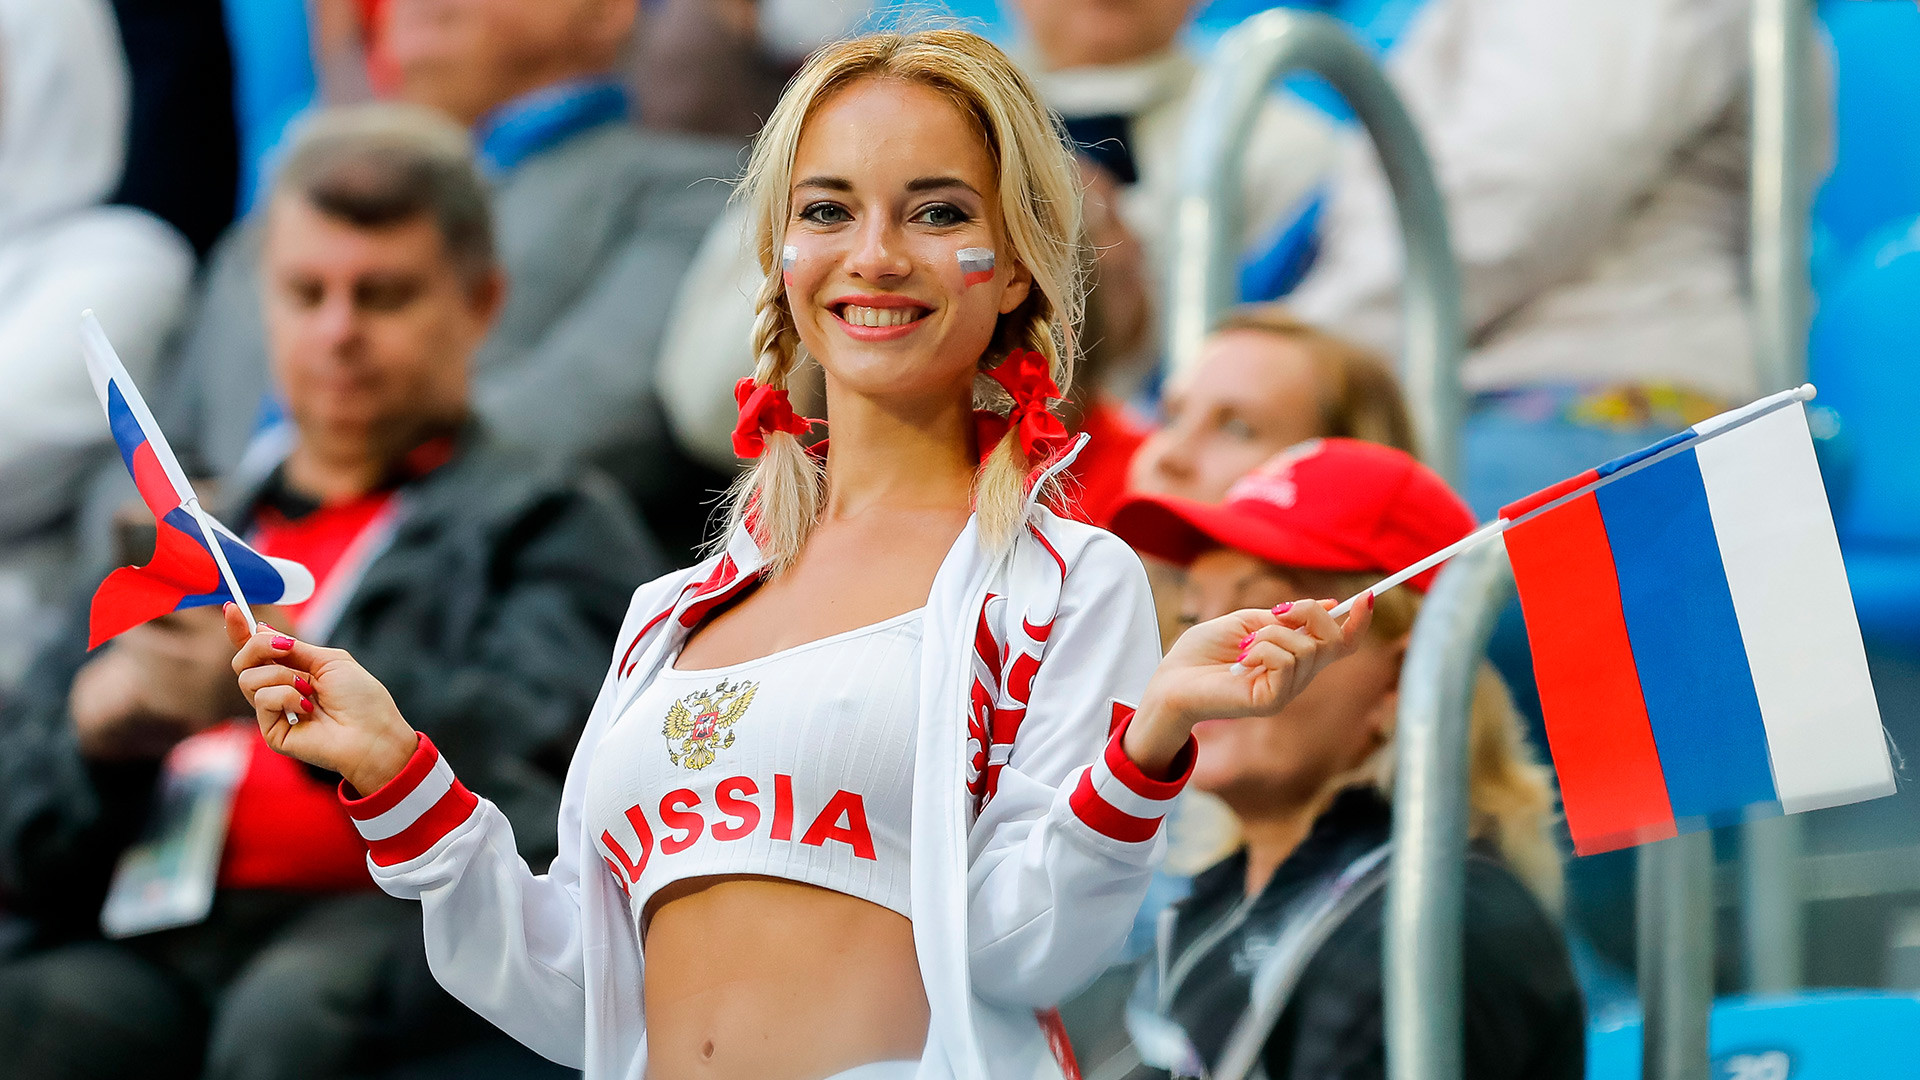 If You Think Russian Football Fans Wear Kokoshnik And Ushanka Hats You Are Right -1601